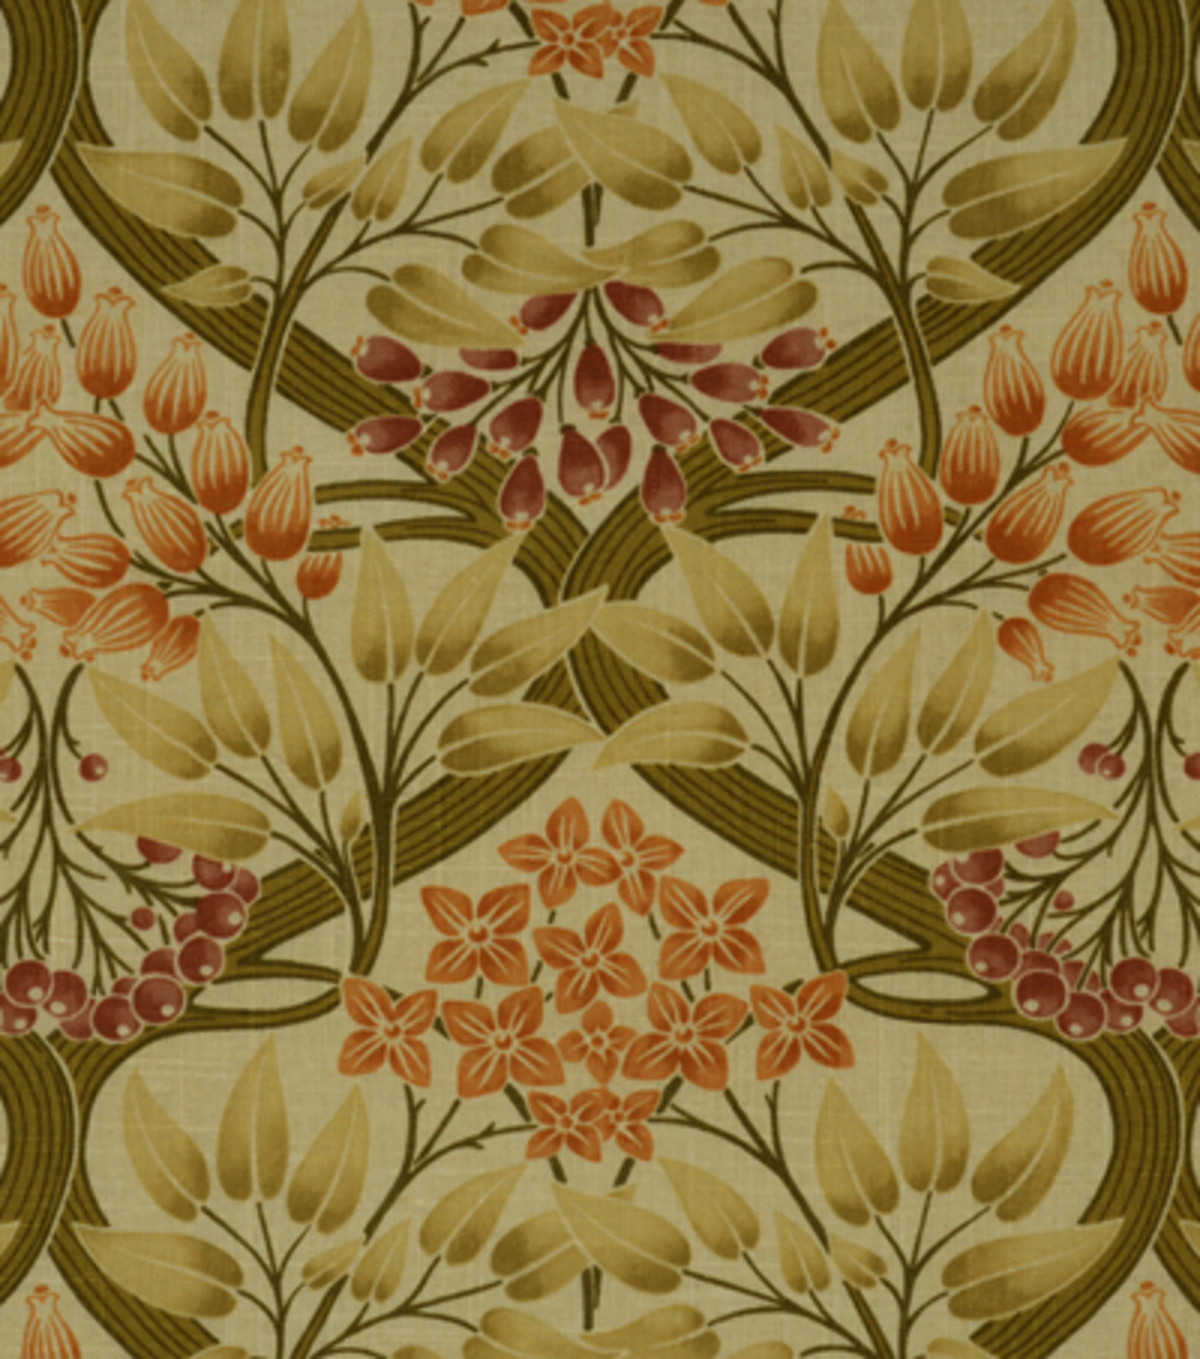 Home Decor 8\u0022x8\u0022 Fabric Swatch-Covington Tiffany 61 Autumn